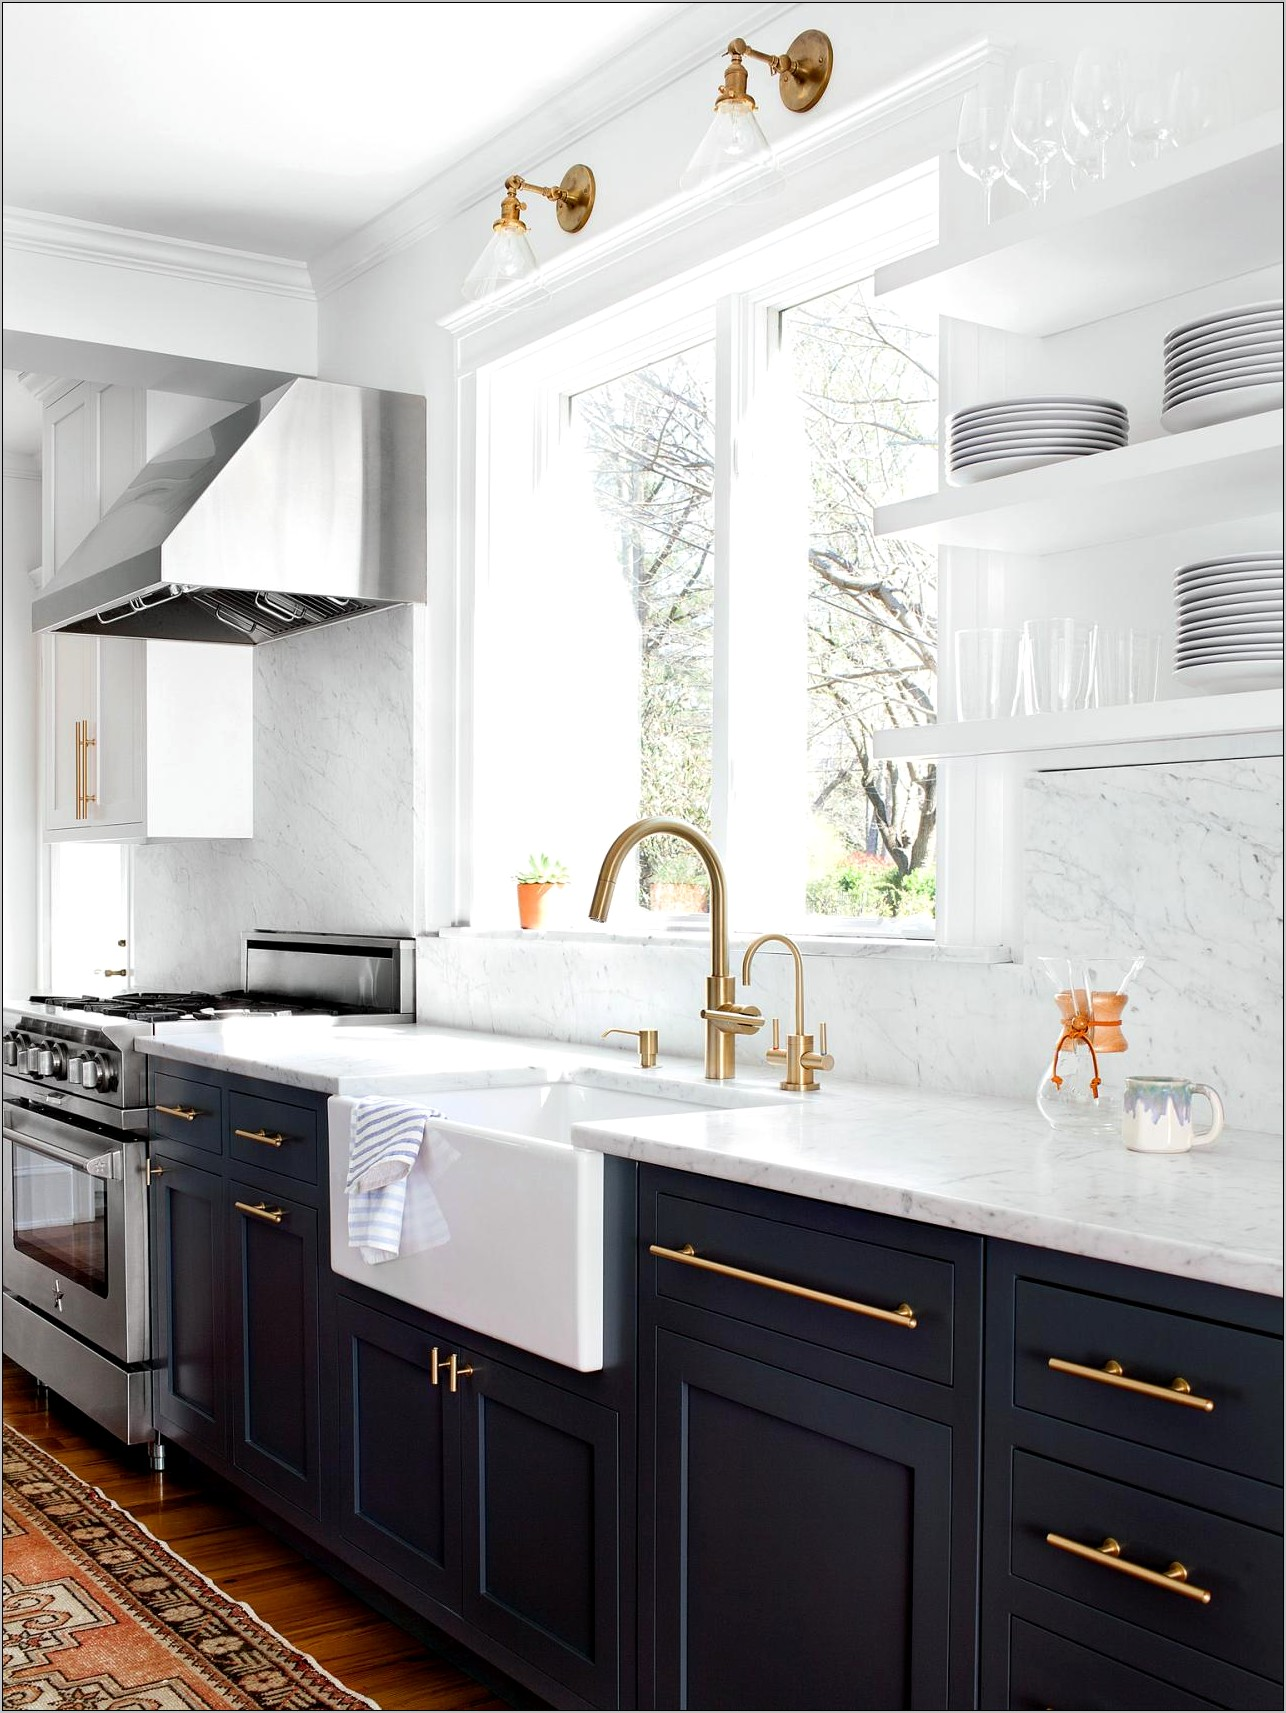 Decorating White Kitchen With Gold Knobs